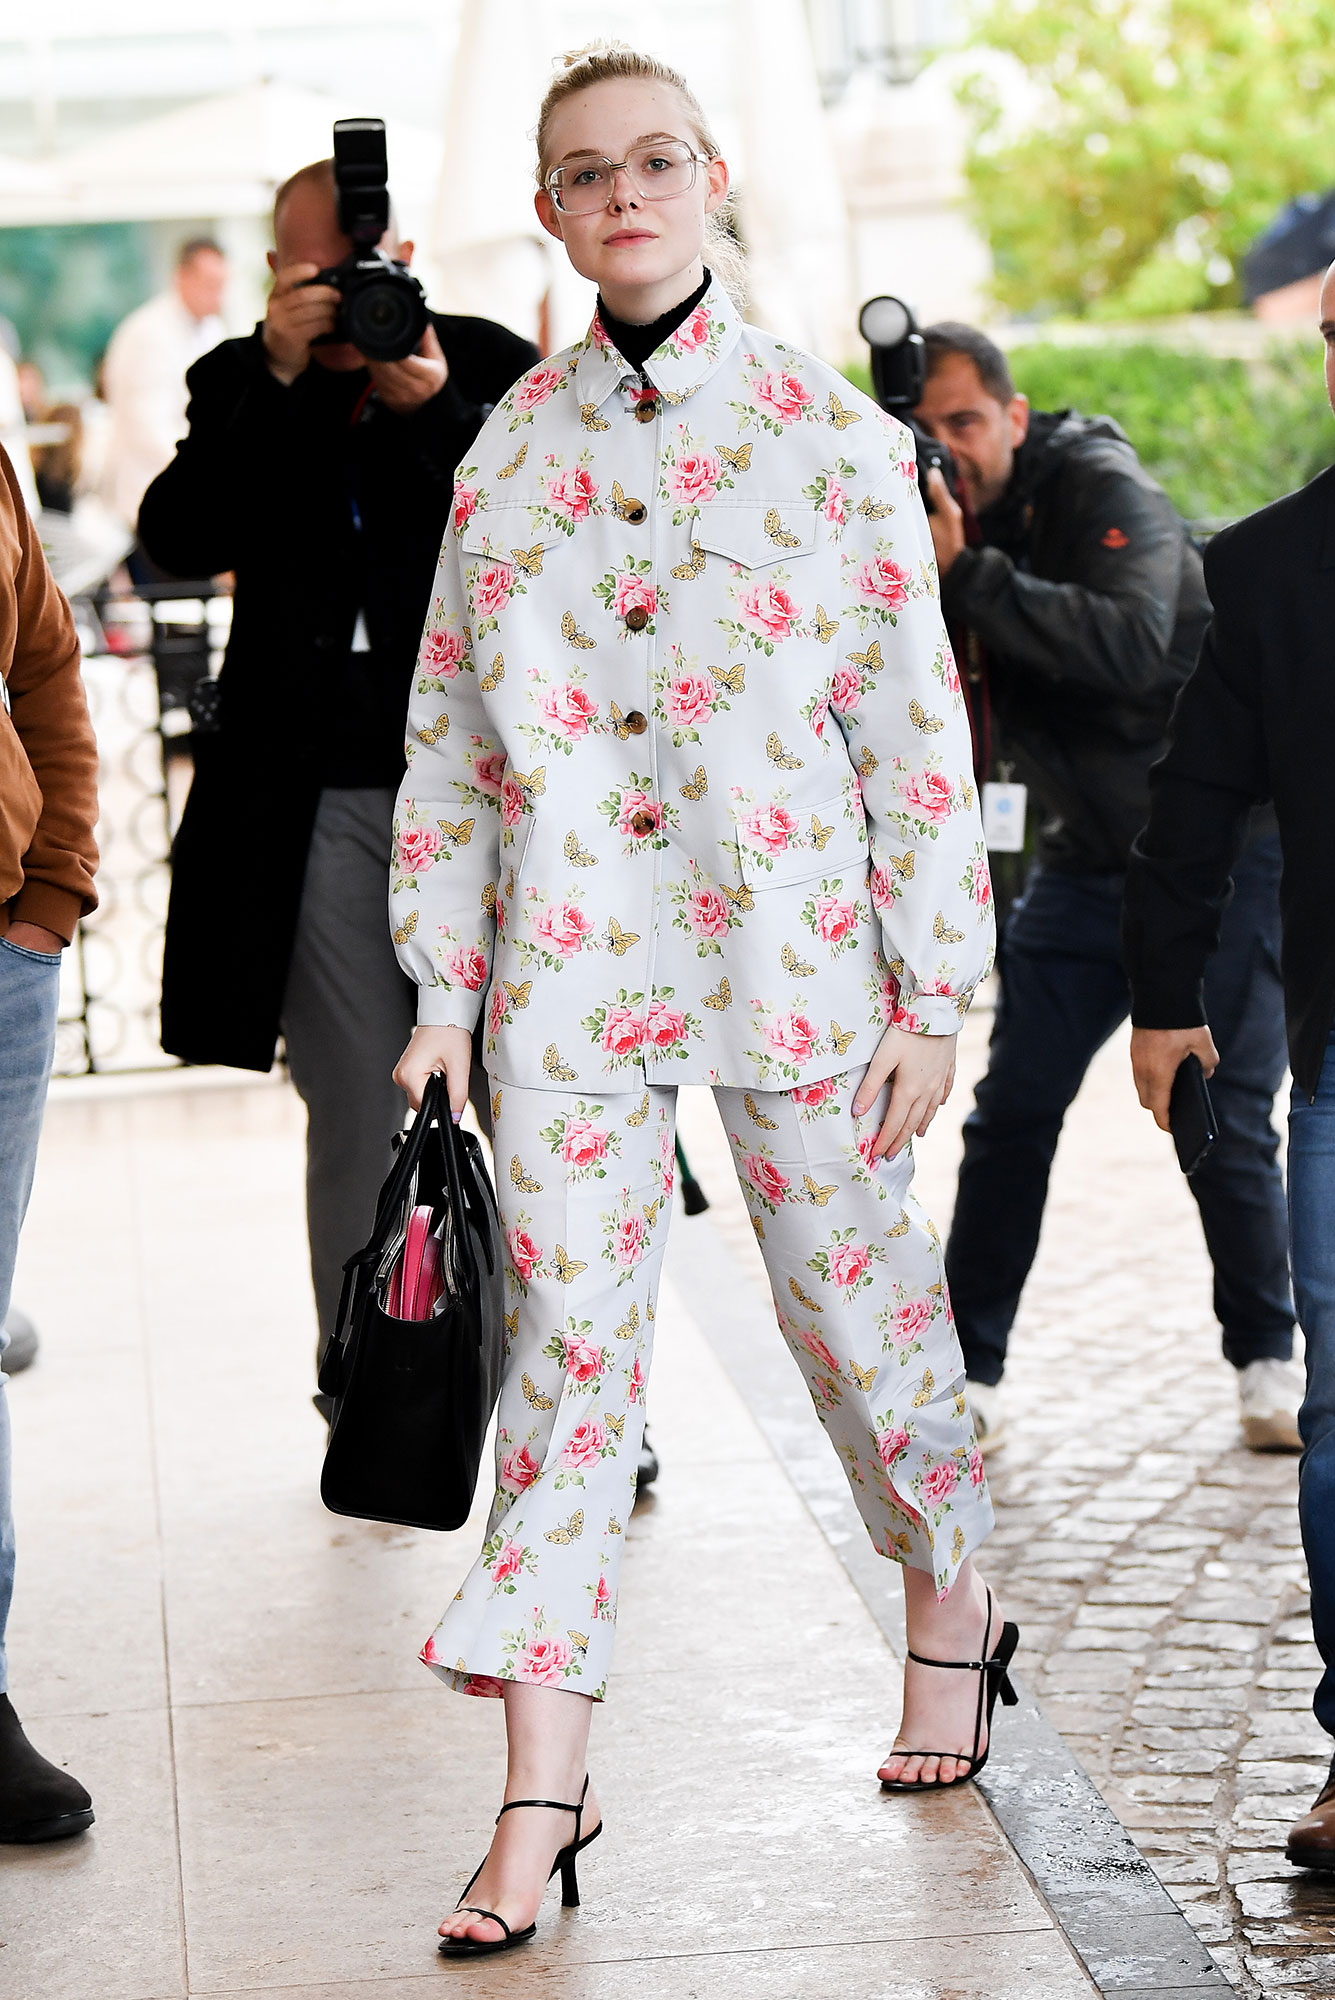 Elle Fanning Stepping Out in Style at Cannes Film Festival - It was all about the flower power for the blonde beauty in her two-piece ensemble on Saturday, May 18.